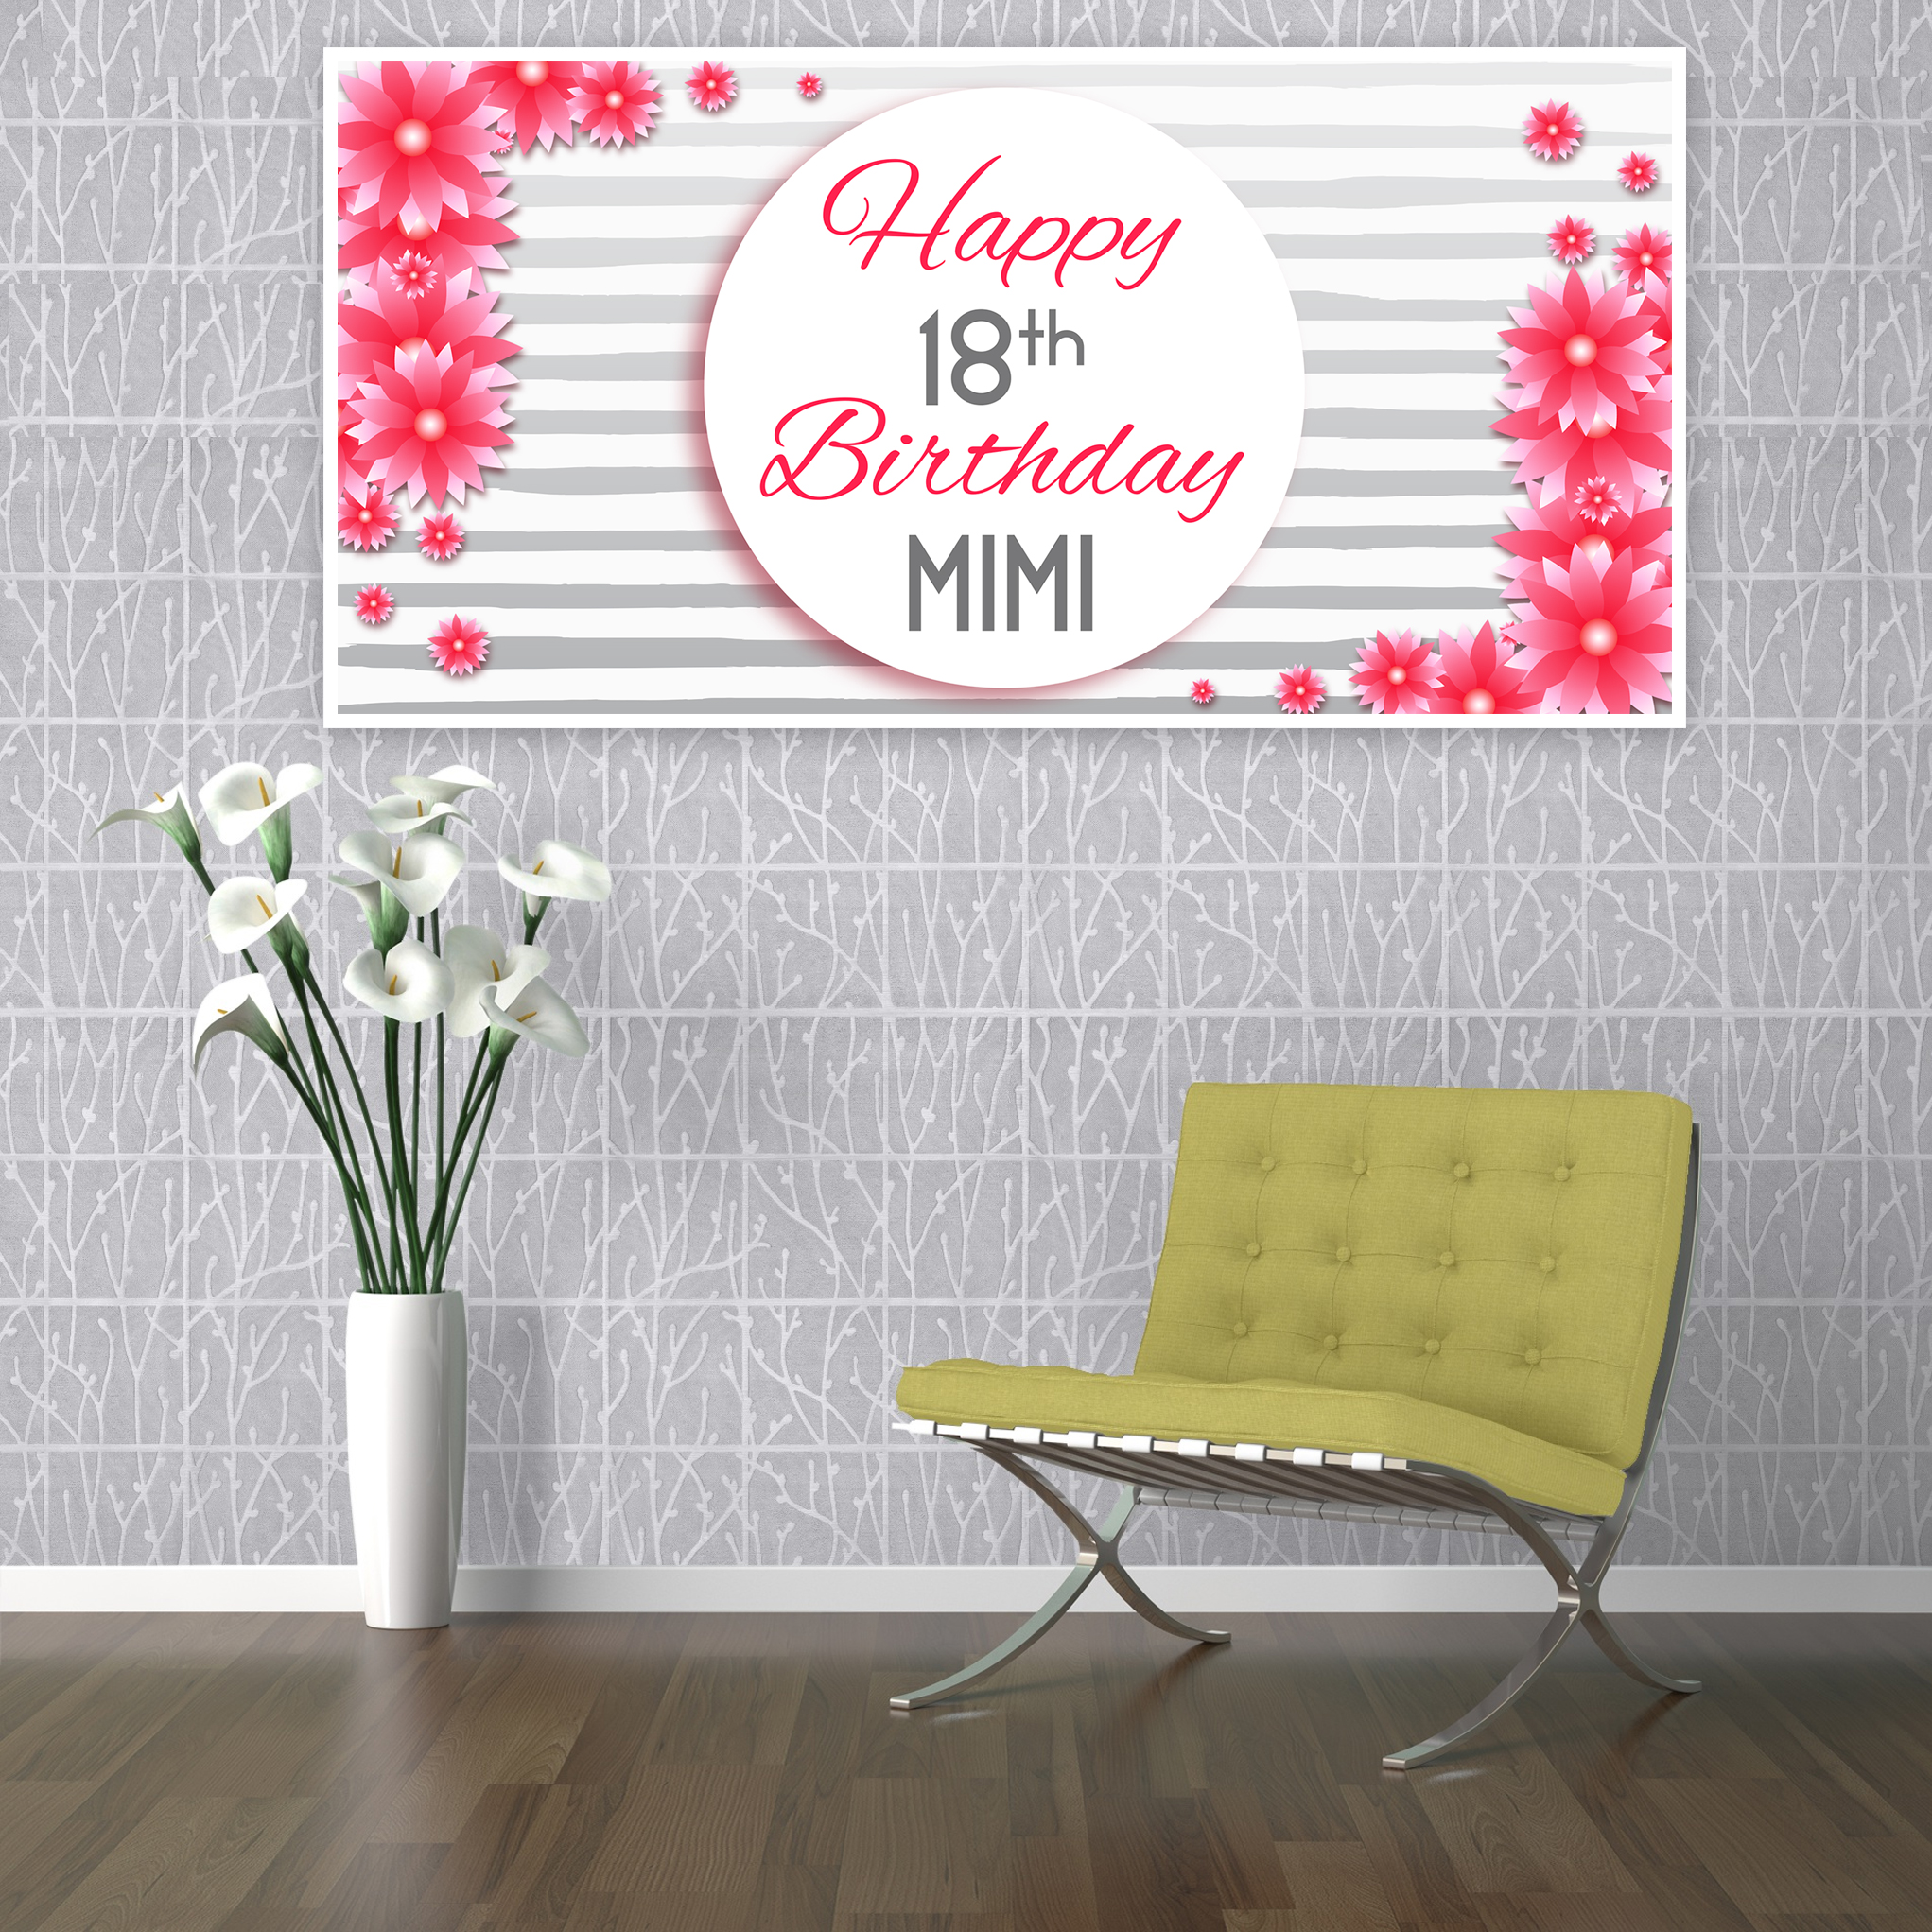 18th birthday banners personalized with photo ; 18th-birthday-banner-25-